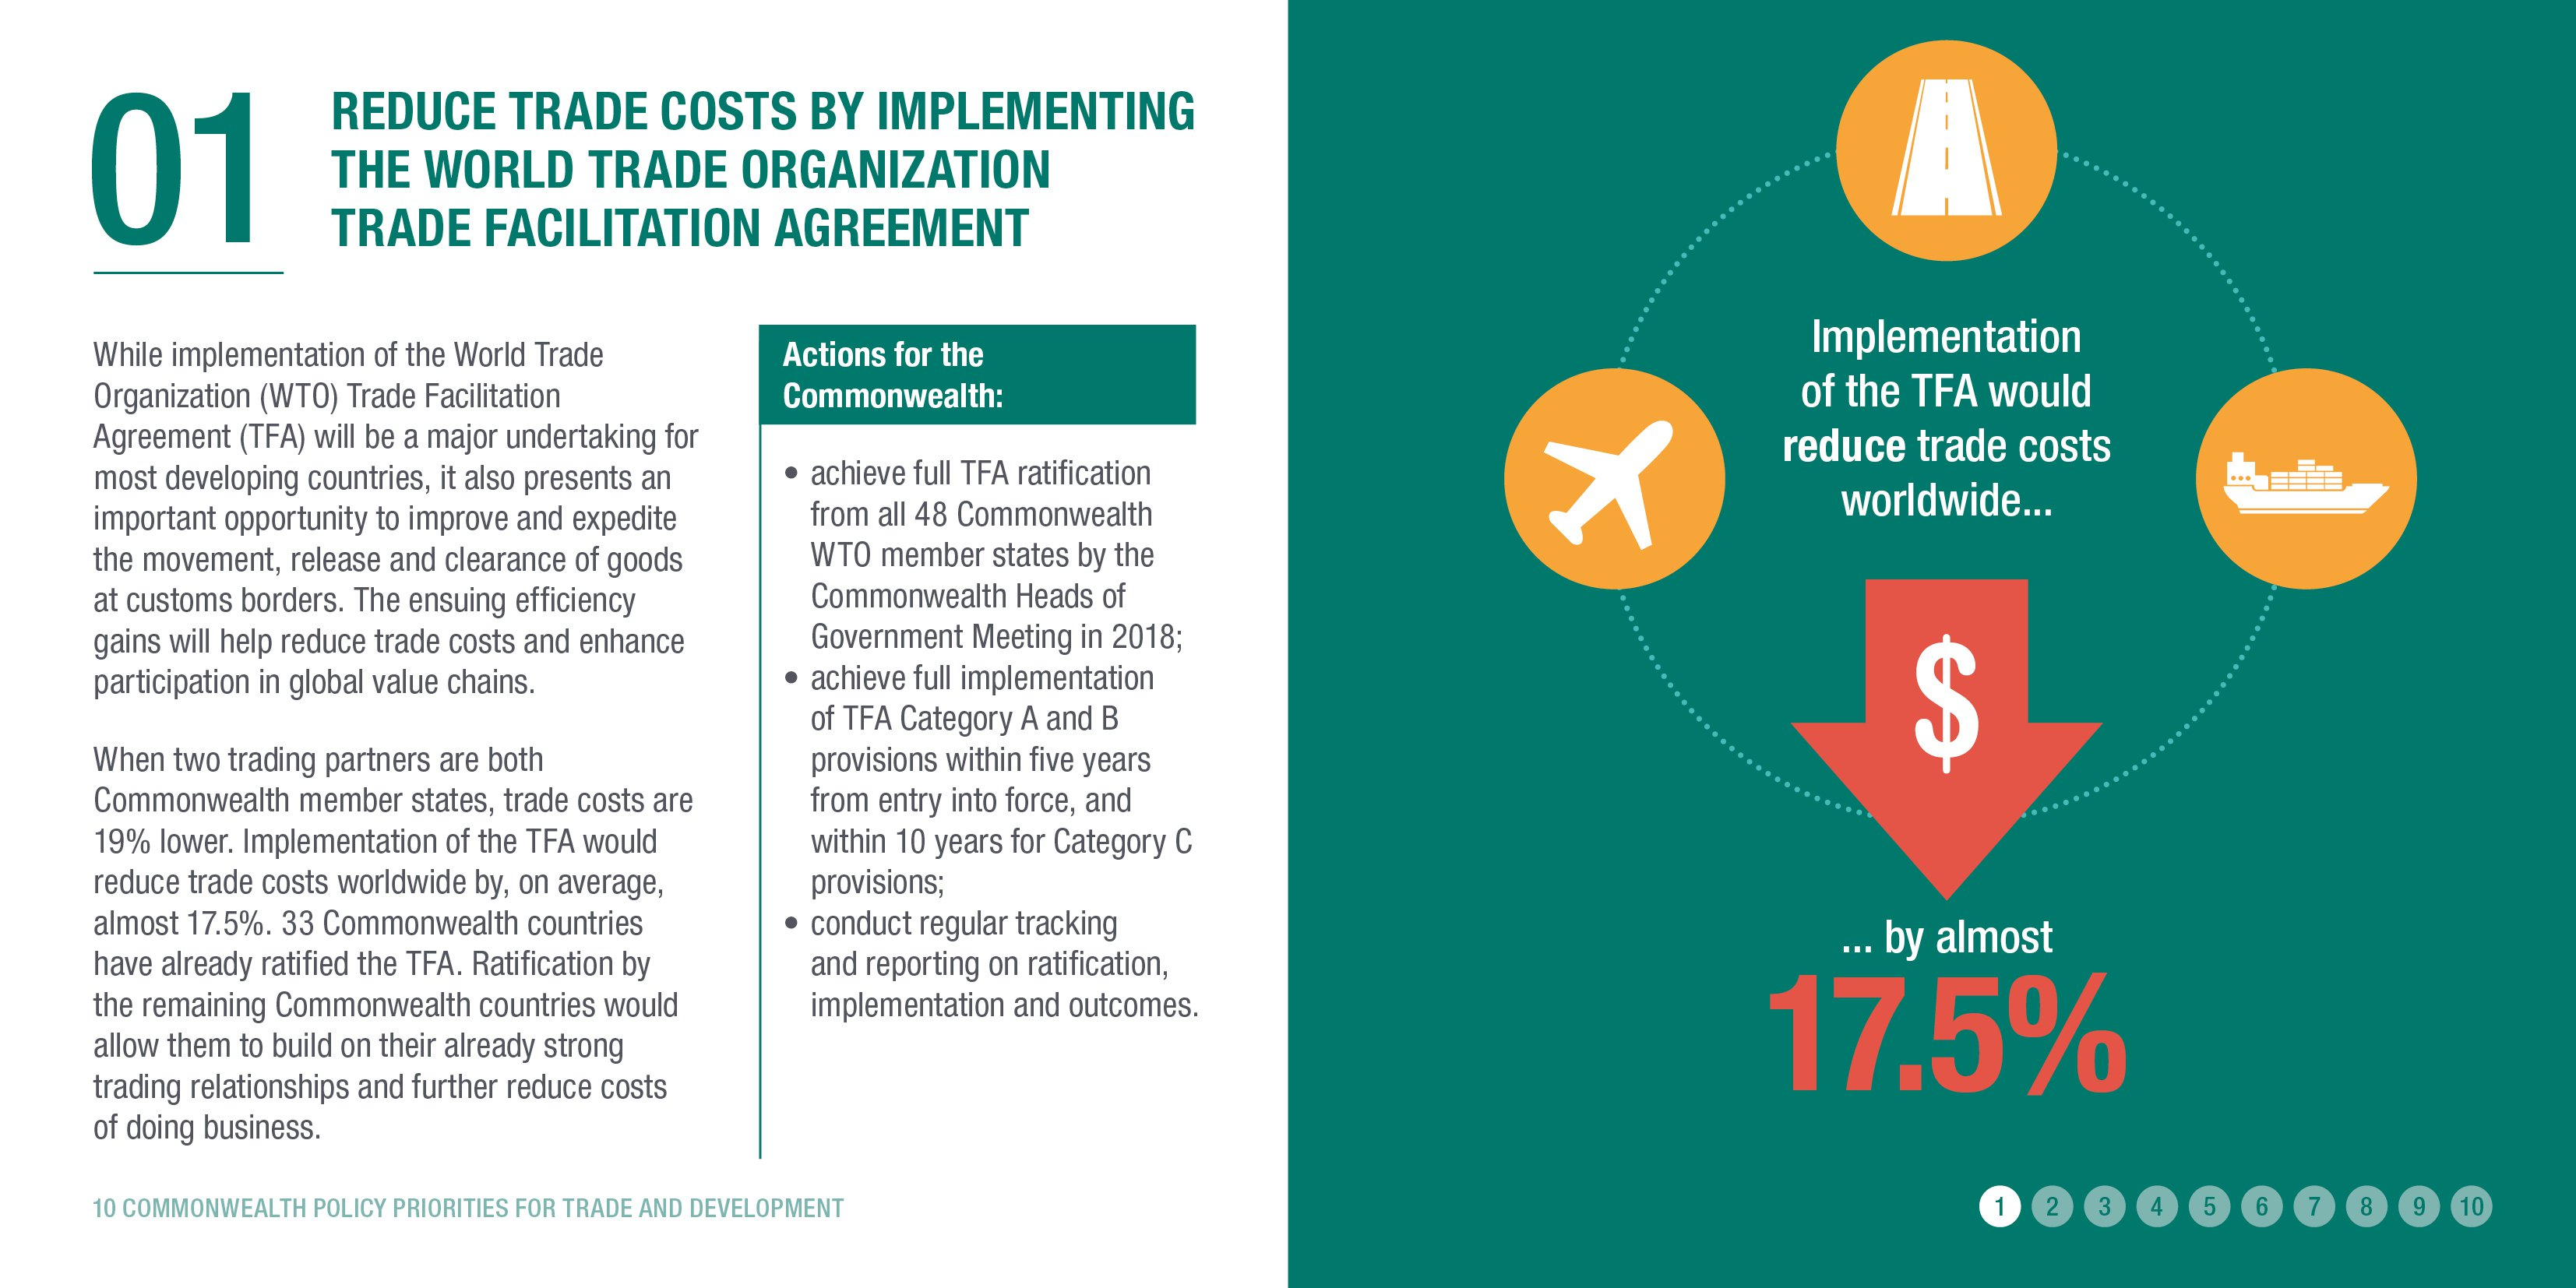 Reduce trade costs by implementing the World Trade Organization Trade Facilitation Agreement